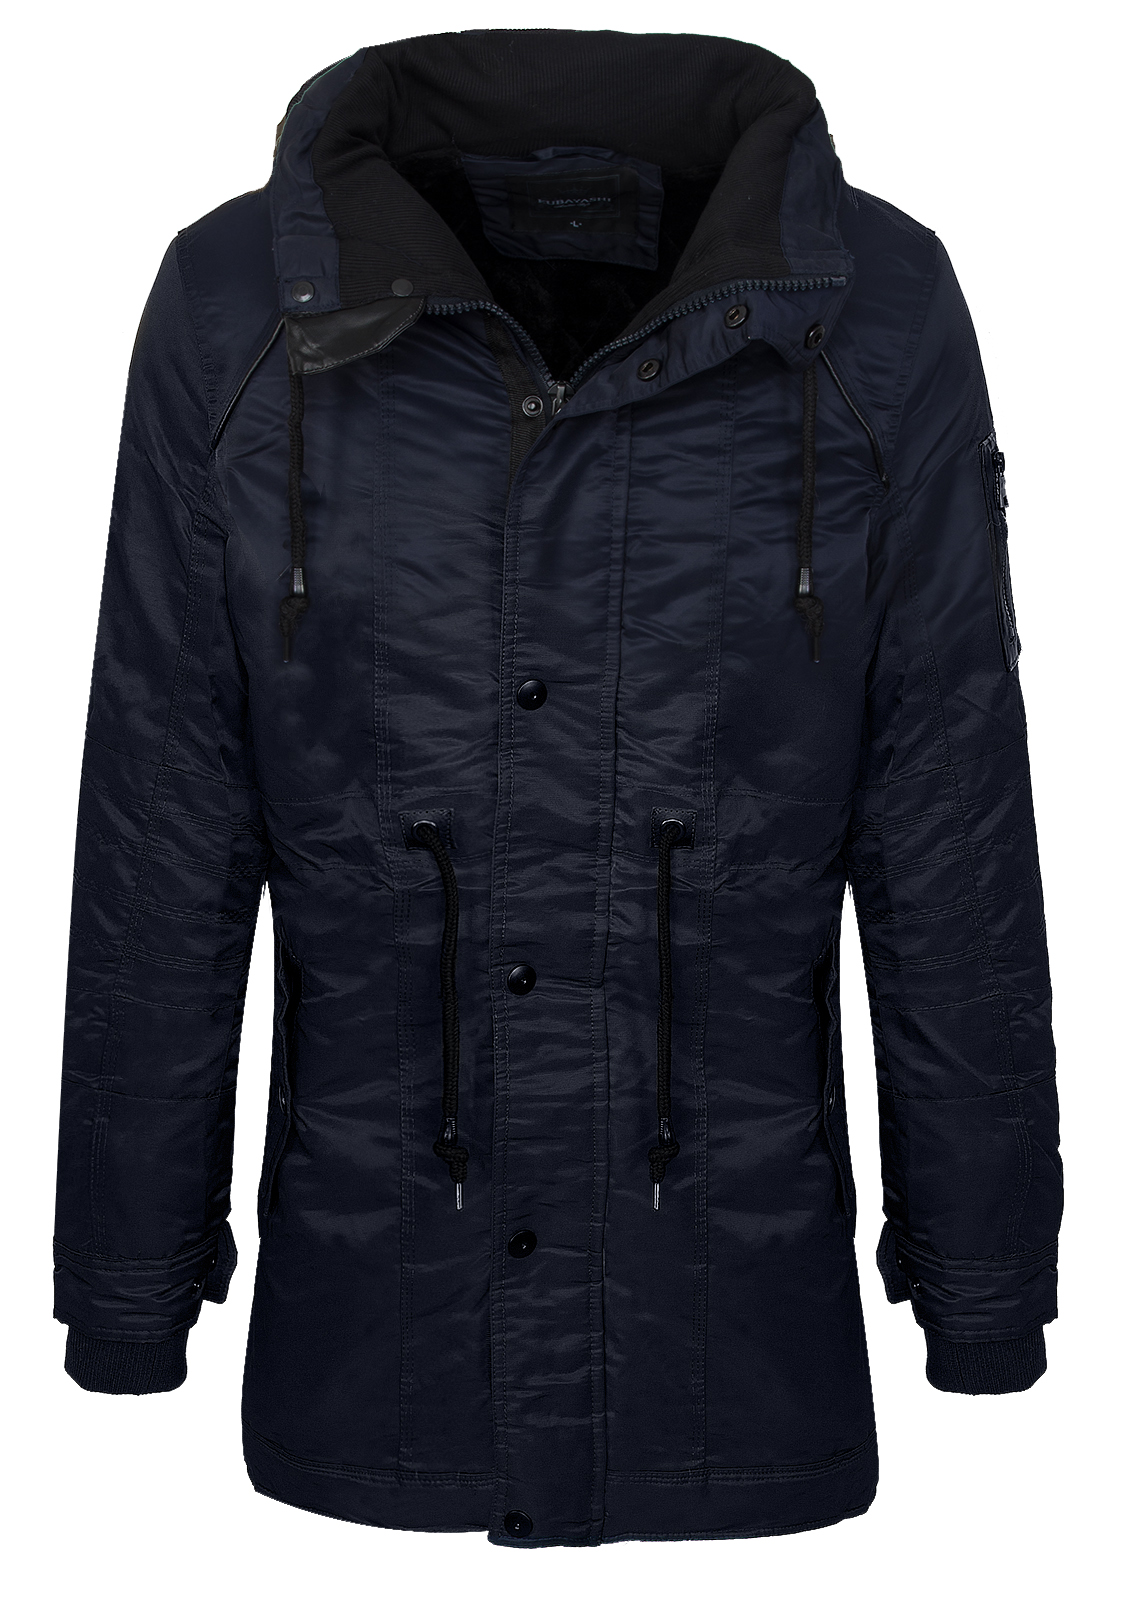 herren winter jacke outdoor mantel funktionsjacke teddyfell futter h 135 s xxl ebay. Black Bedroom Furniture Sets. Home Design Ideas